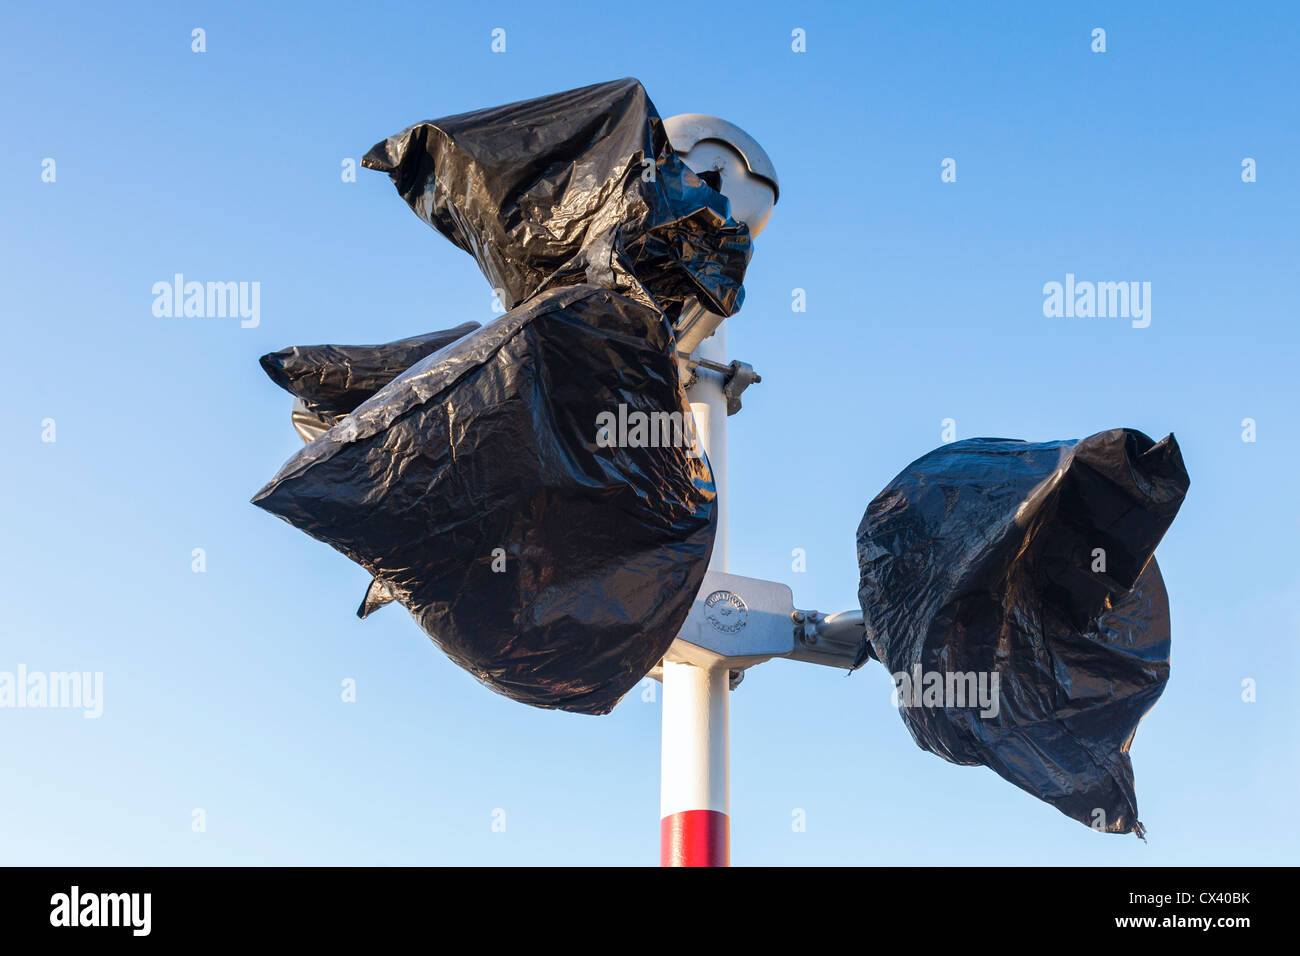 Level crossing warning lights, covered with black plastic bin bags. - Stock Image